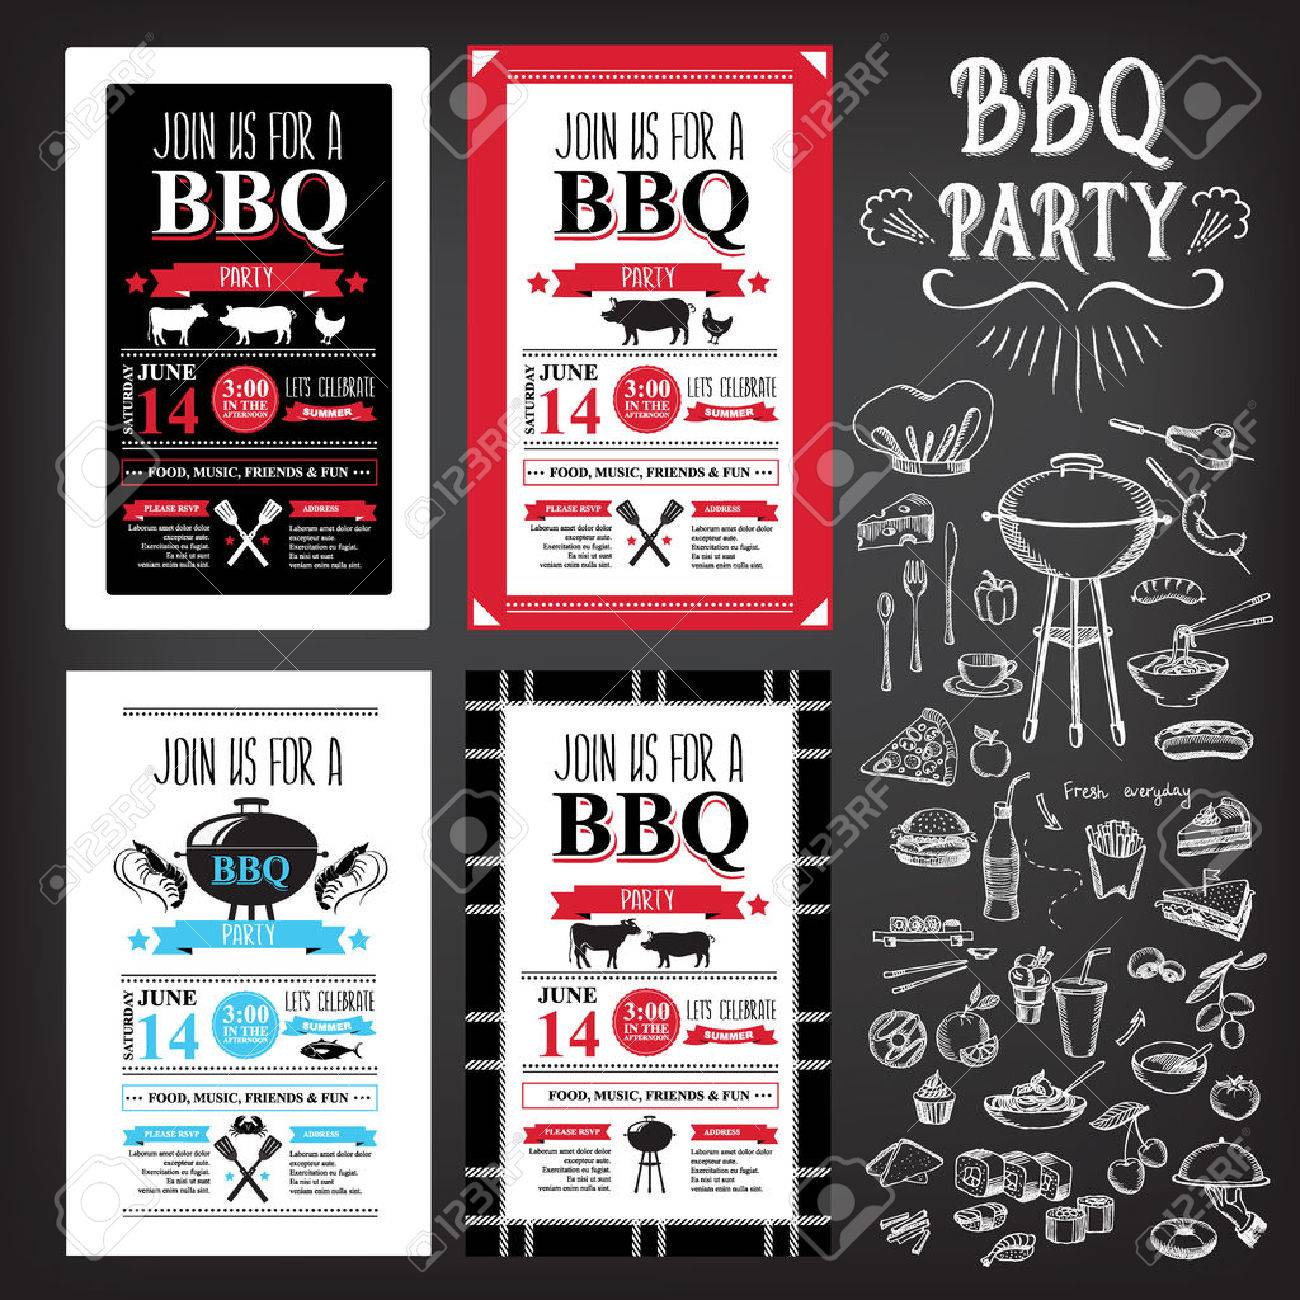 Bbq Party Invitation Templates Free Gallery - Party Invitations Ideas